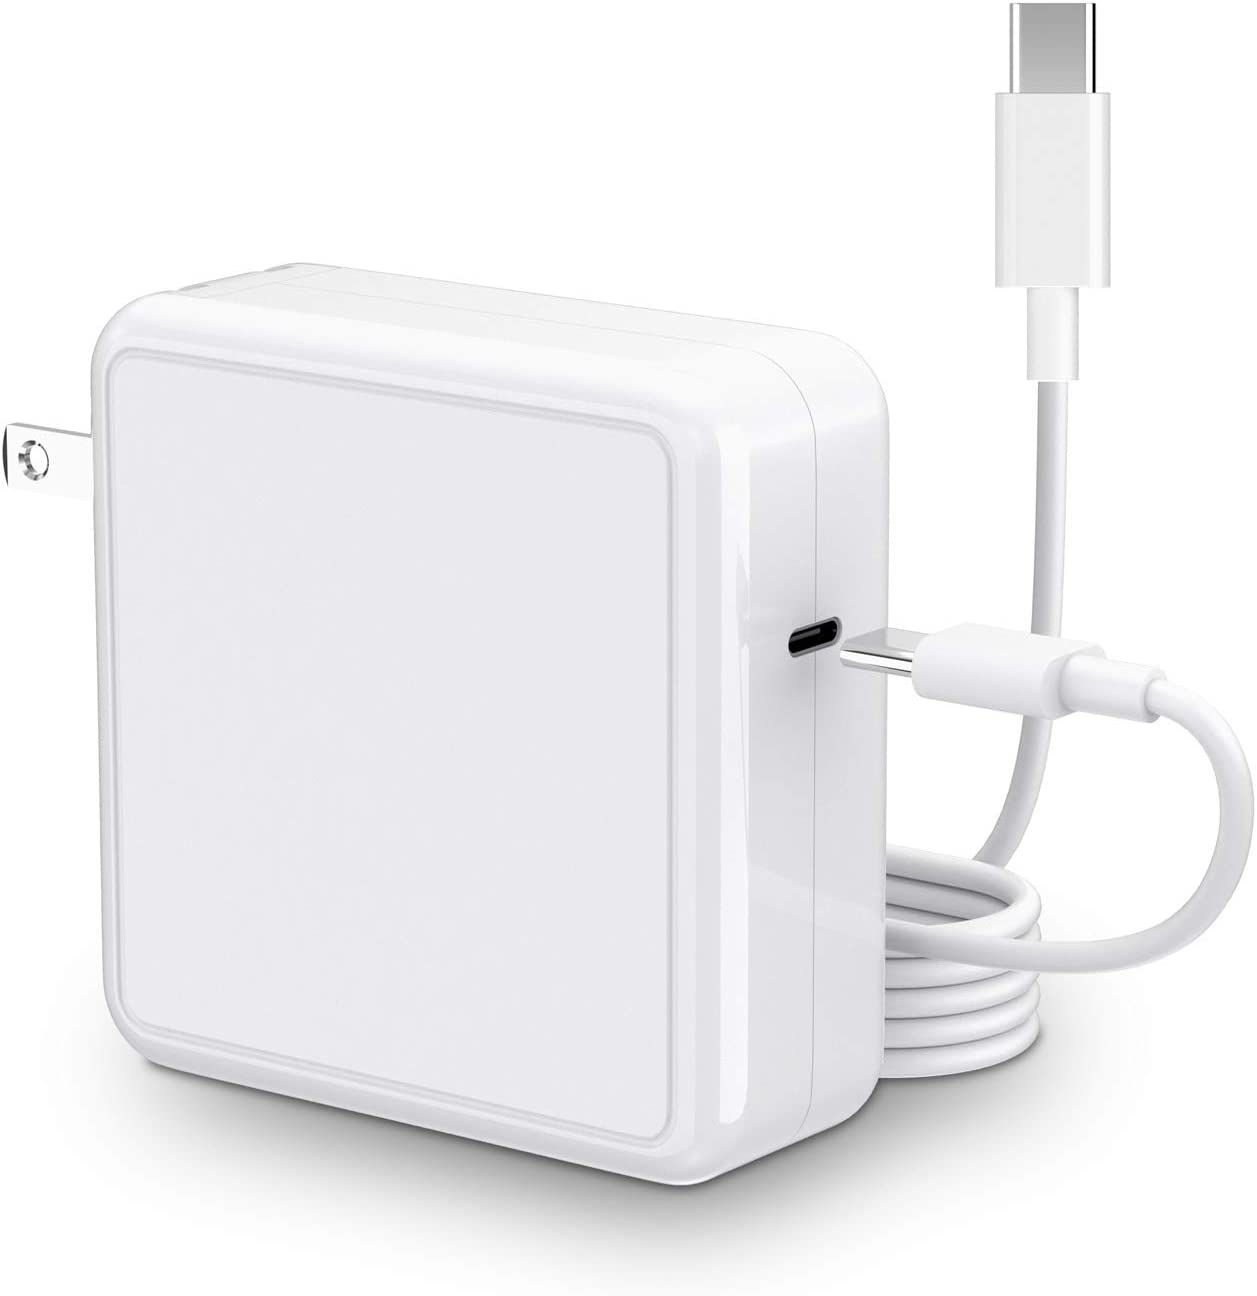 SIMPFUN Mac Book Pro Charger 96W USB C Charger Compatible with Power Adapter 96W & 87W & 61W & 30W Fast Charging for Mac Book Pro 13'' 15'' 16